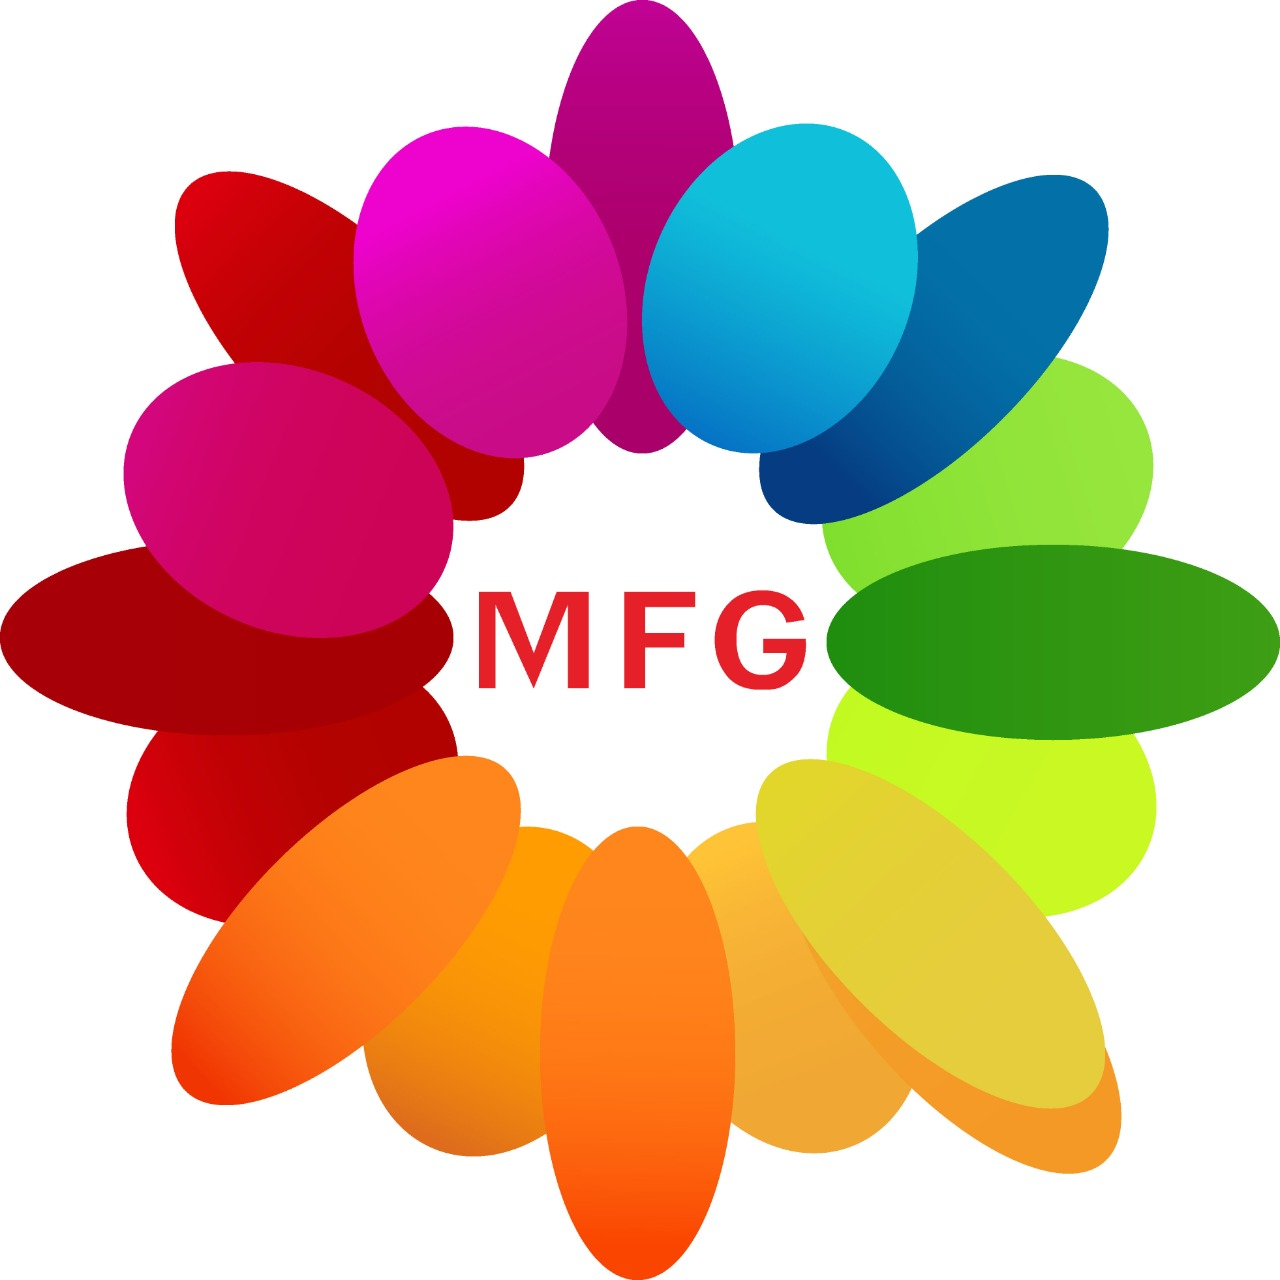 Bunch of 20 red and white roses with 1 kg double chocolate cake with 5 blown balloons